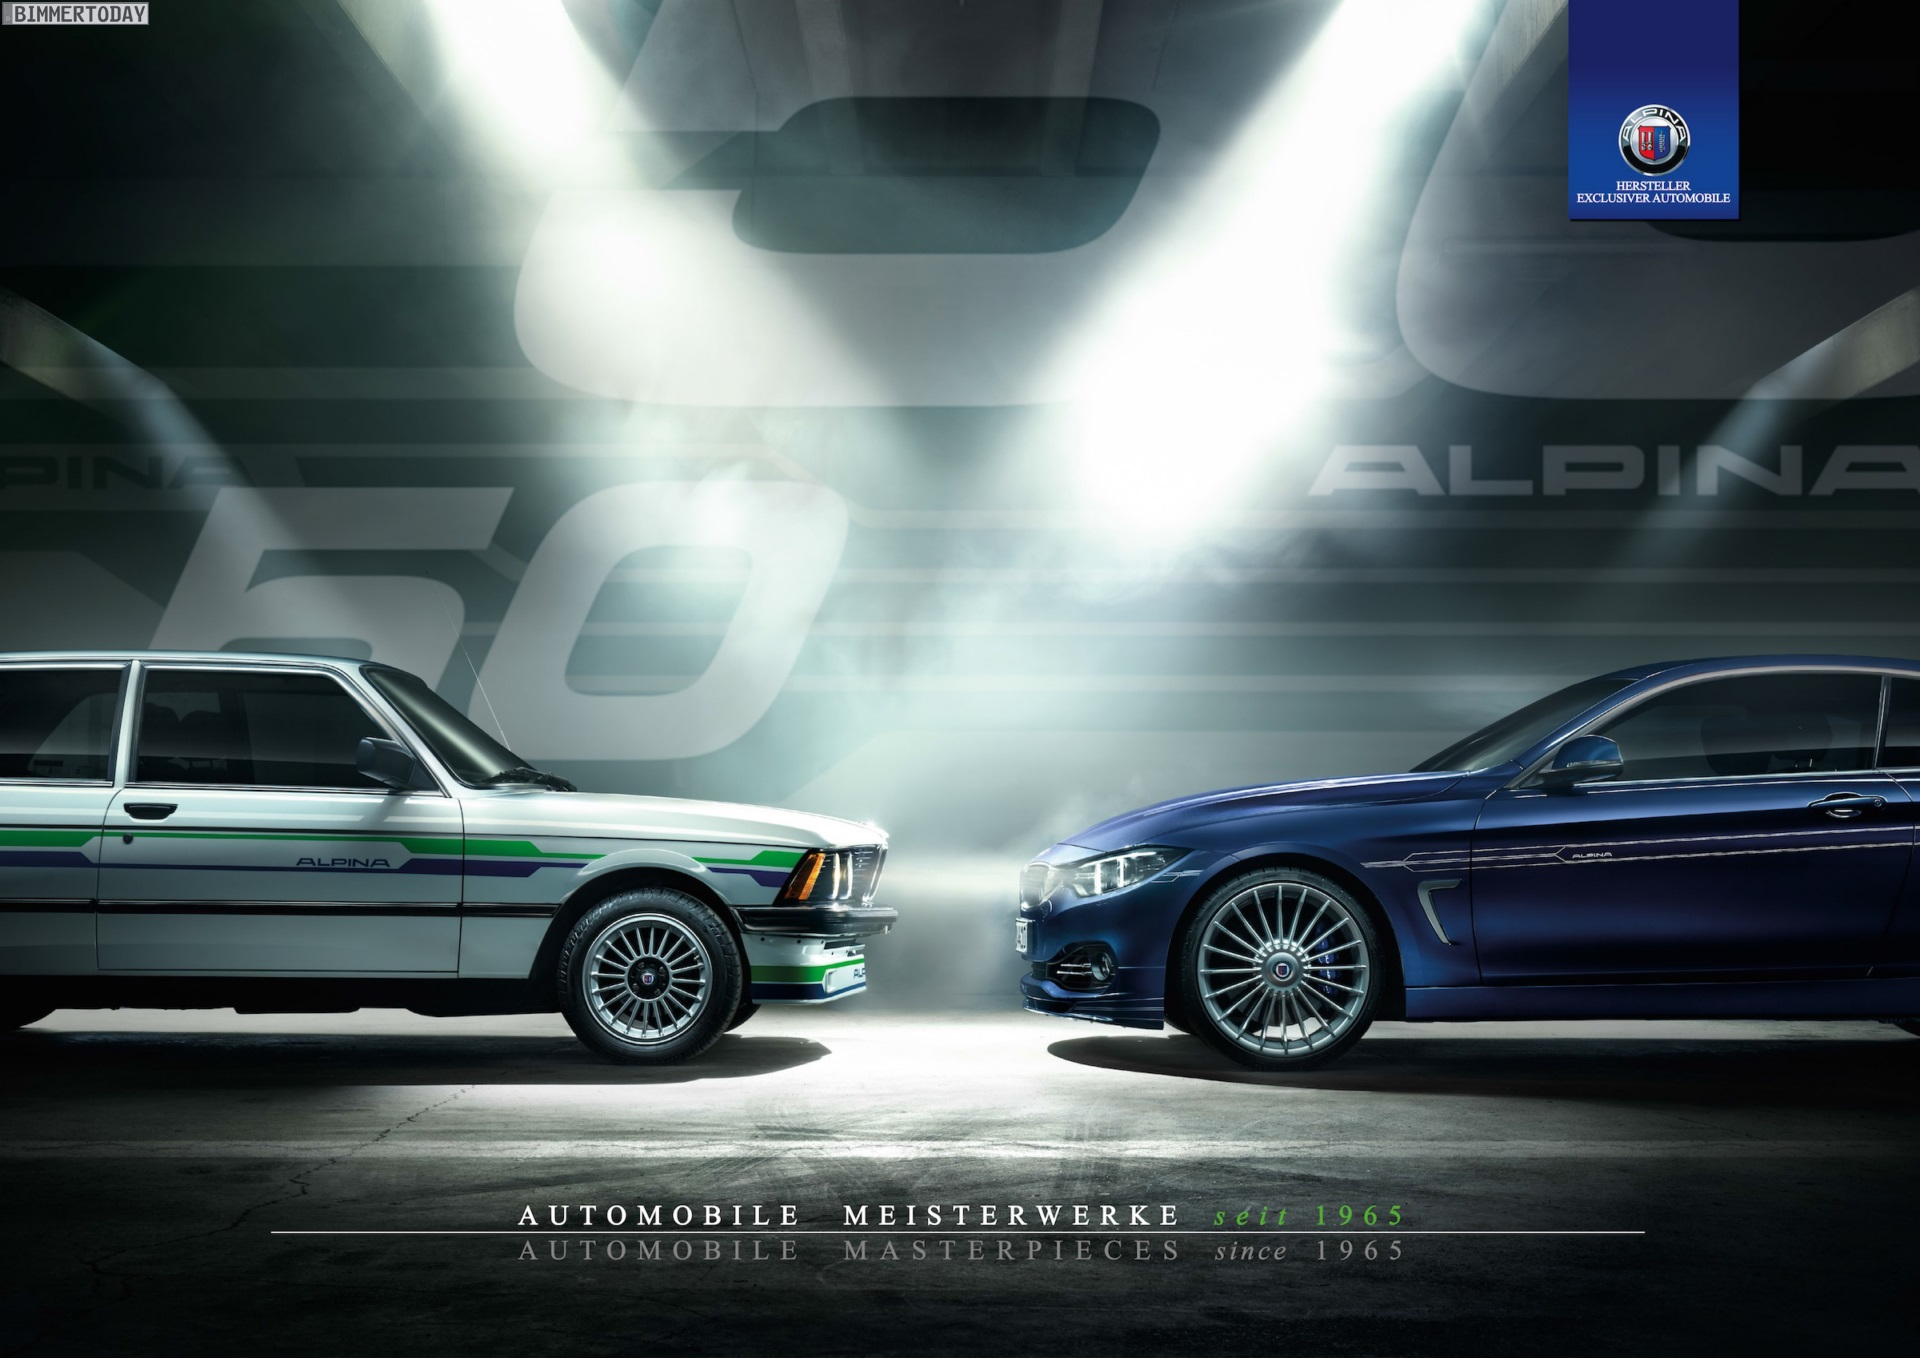 Alpina Calendar 2015 50 Years Of Perfection In 12 Designs